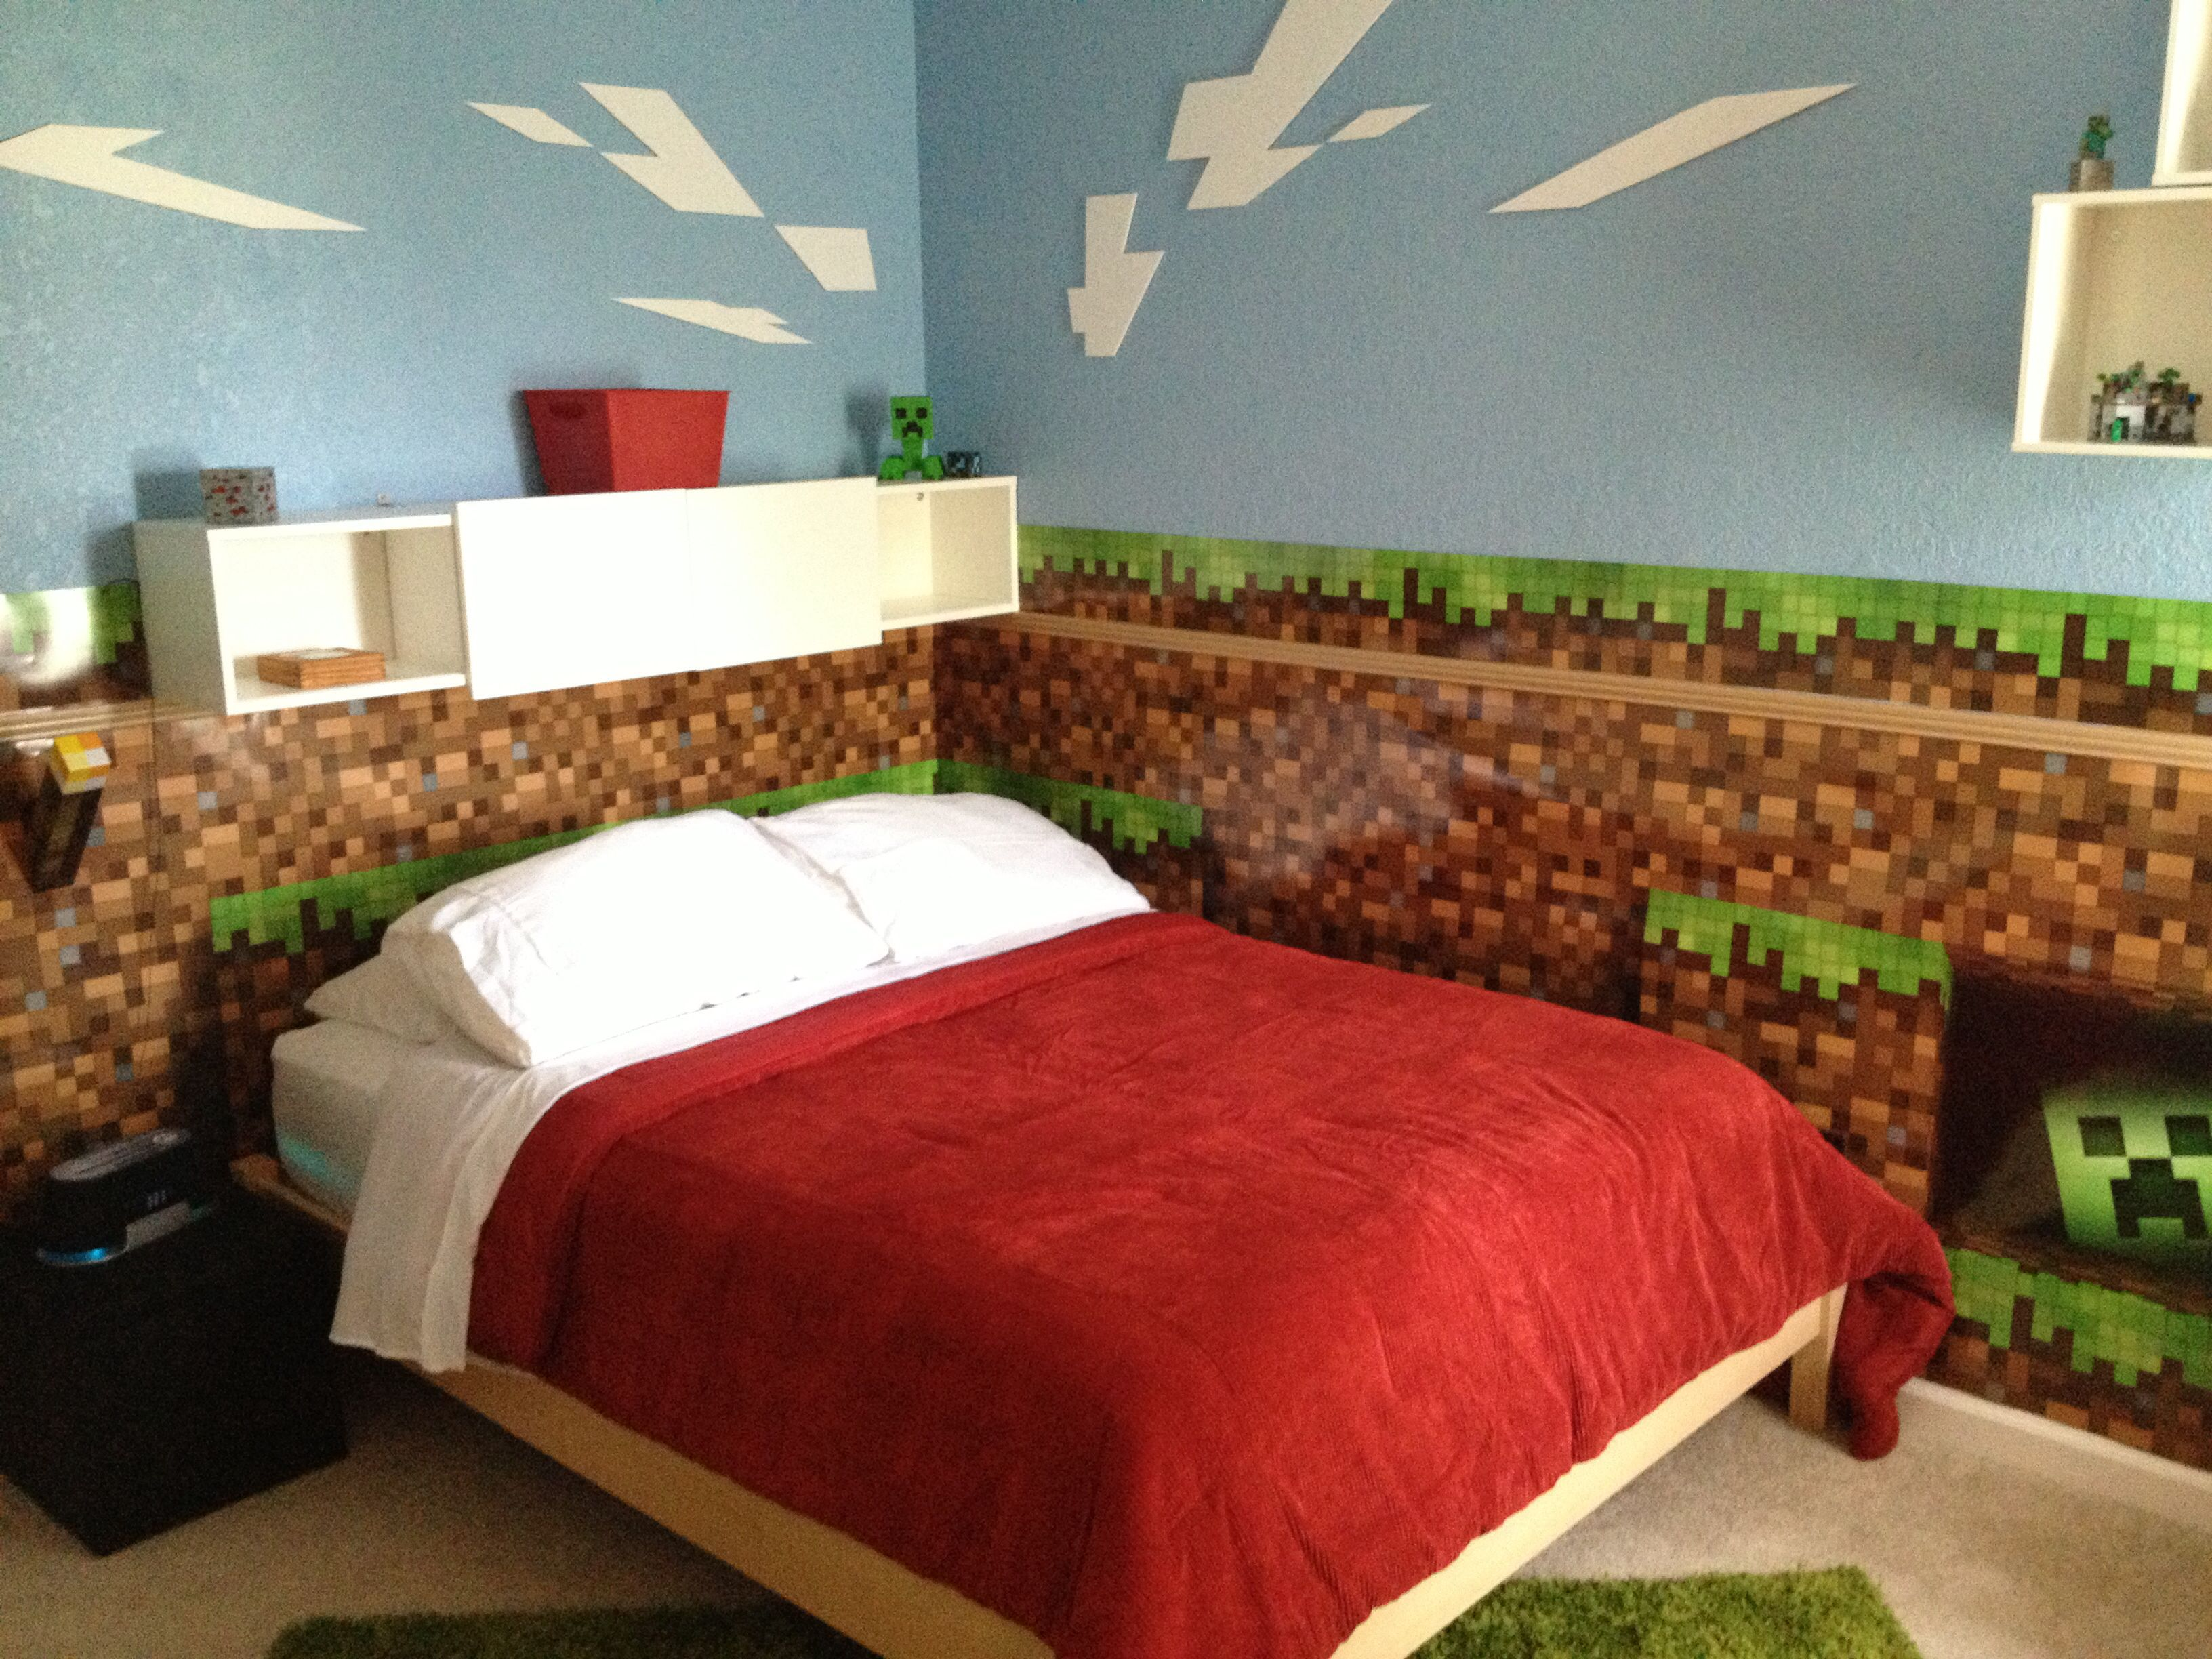 Minecraft Bedroom Minecraft Bedroom Decor Minecraft Room Decor